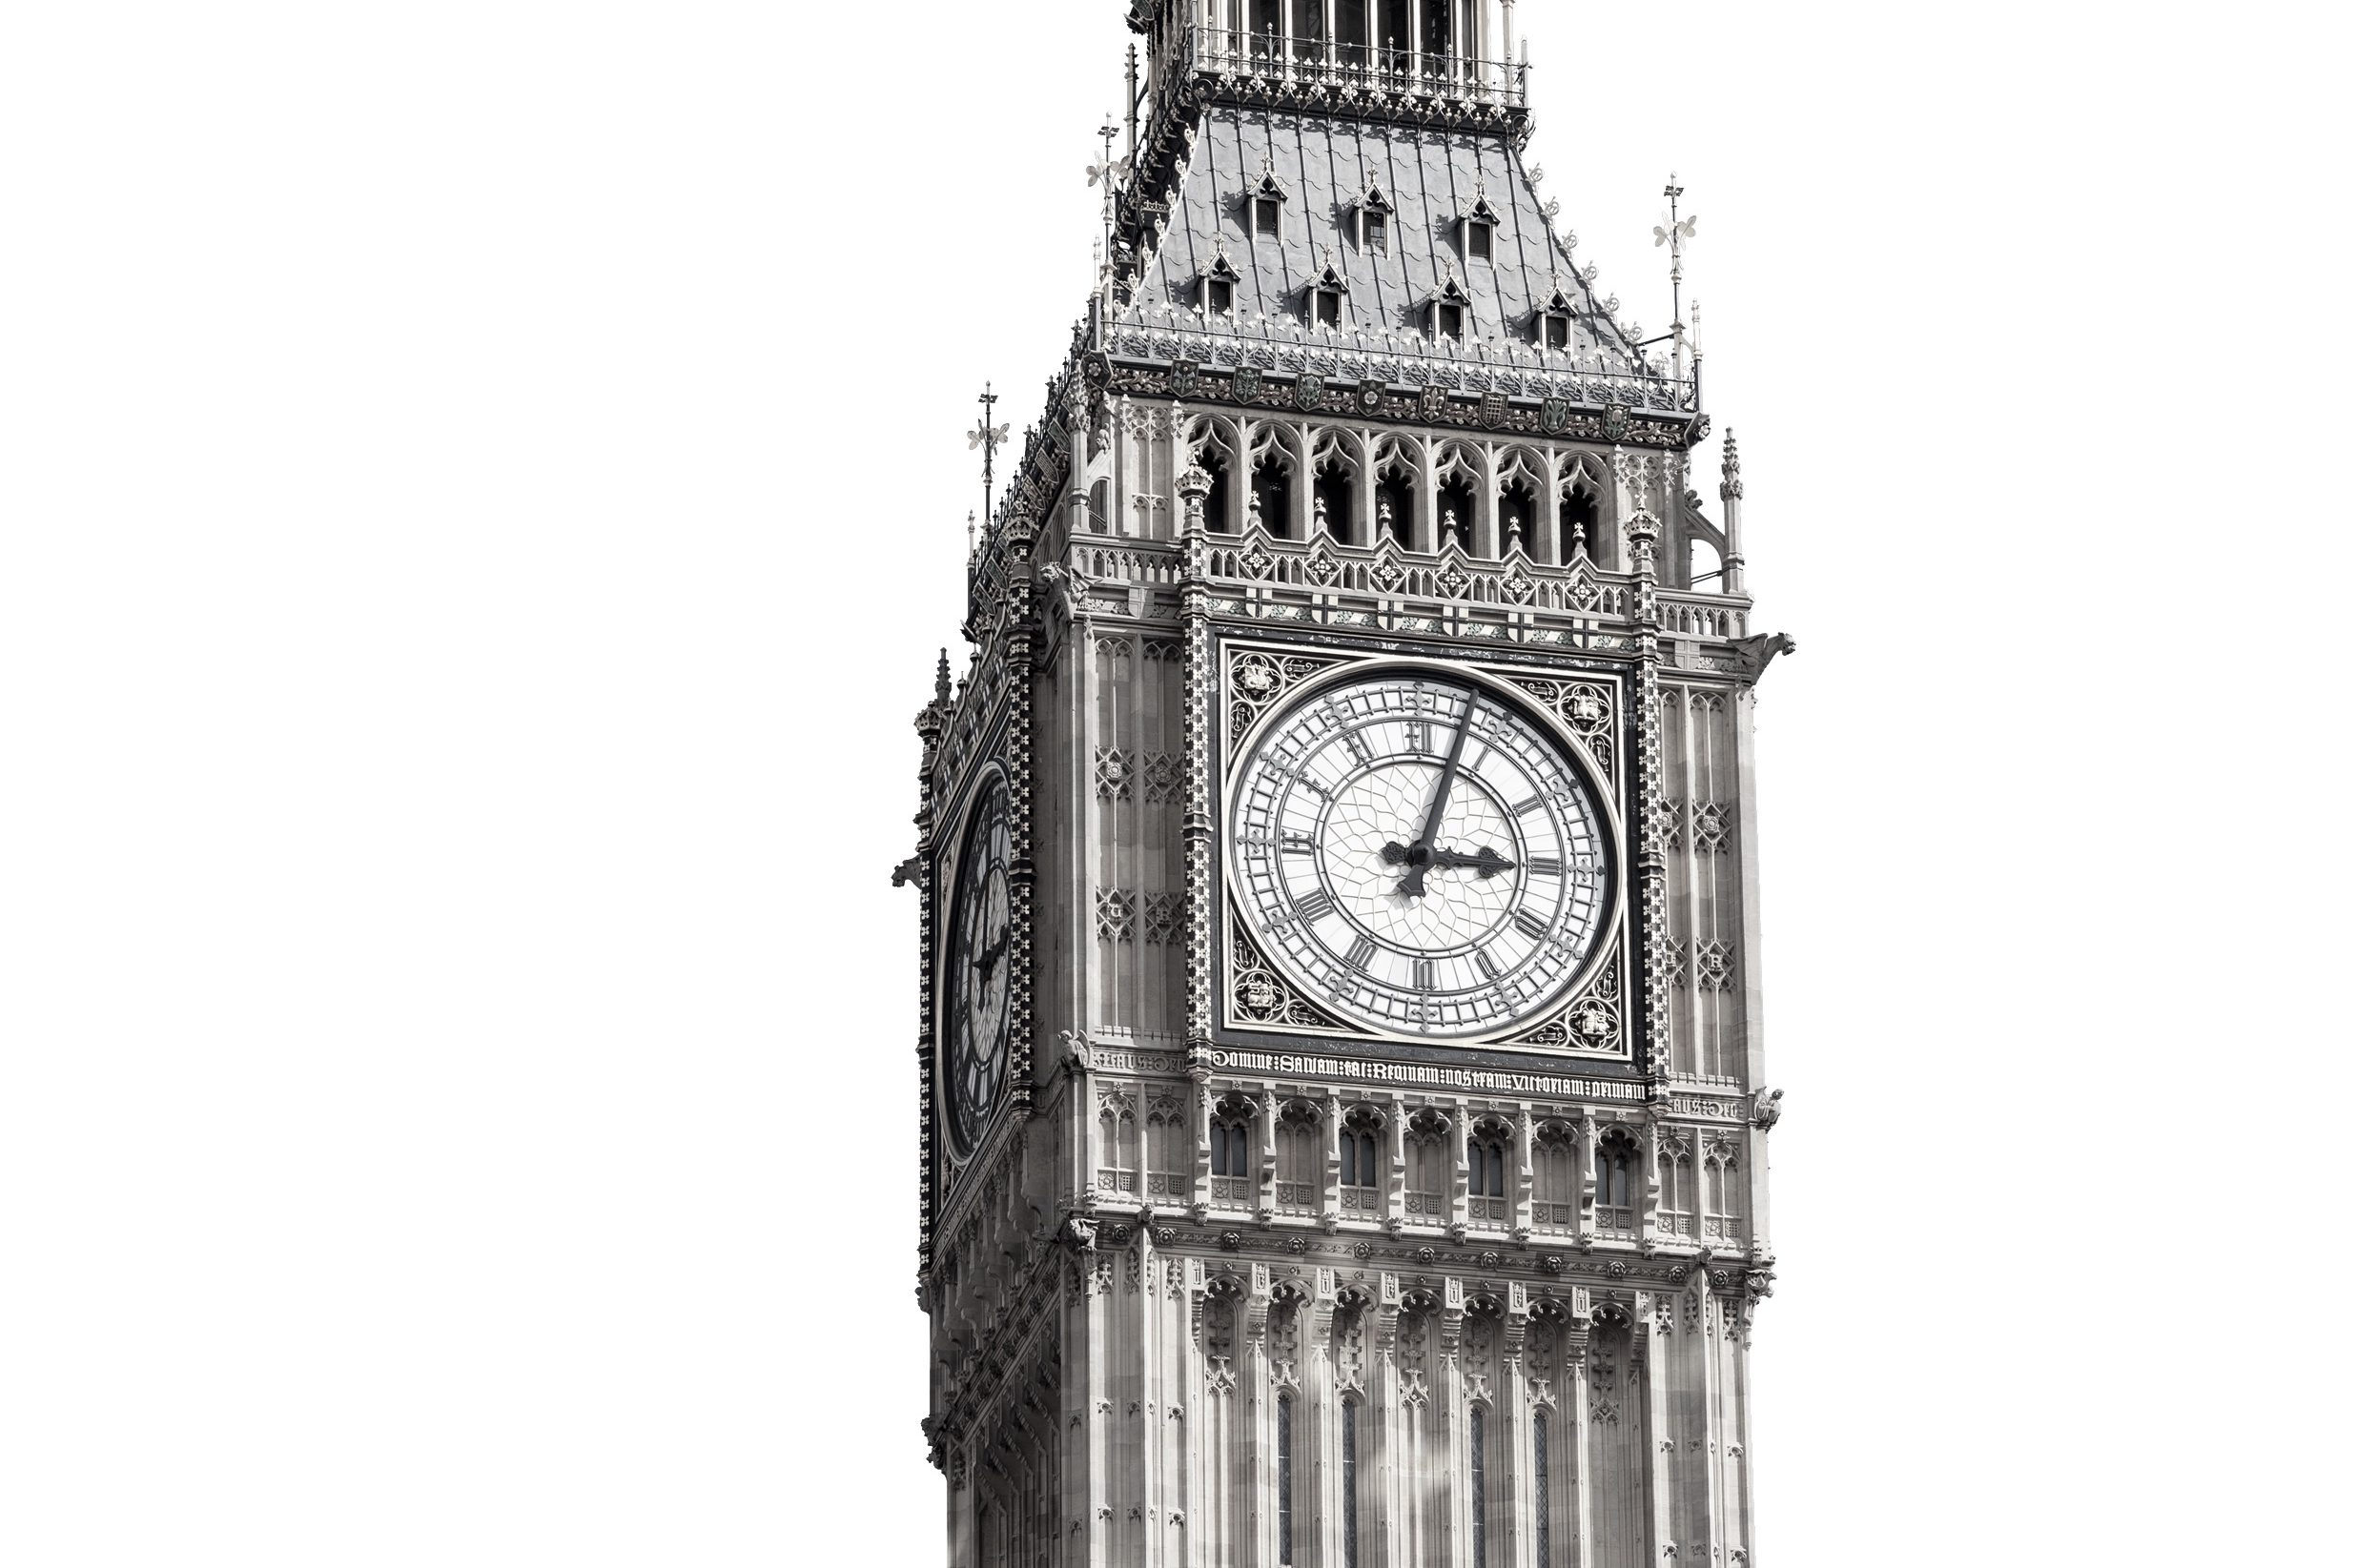 Close up view of Big Ben's clock tower